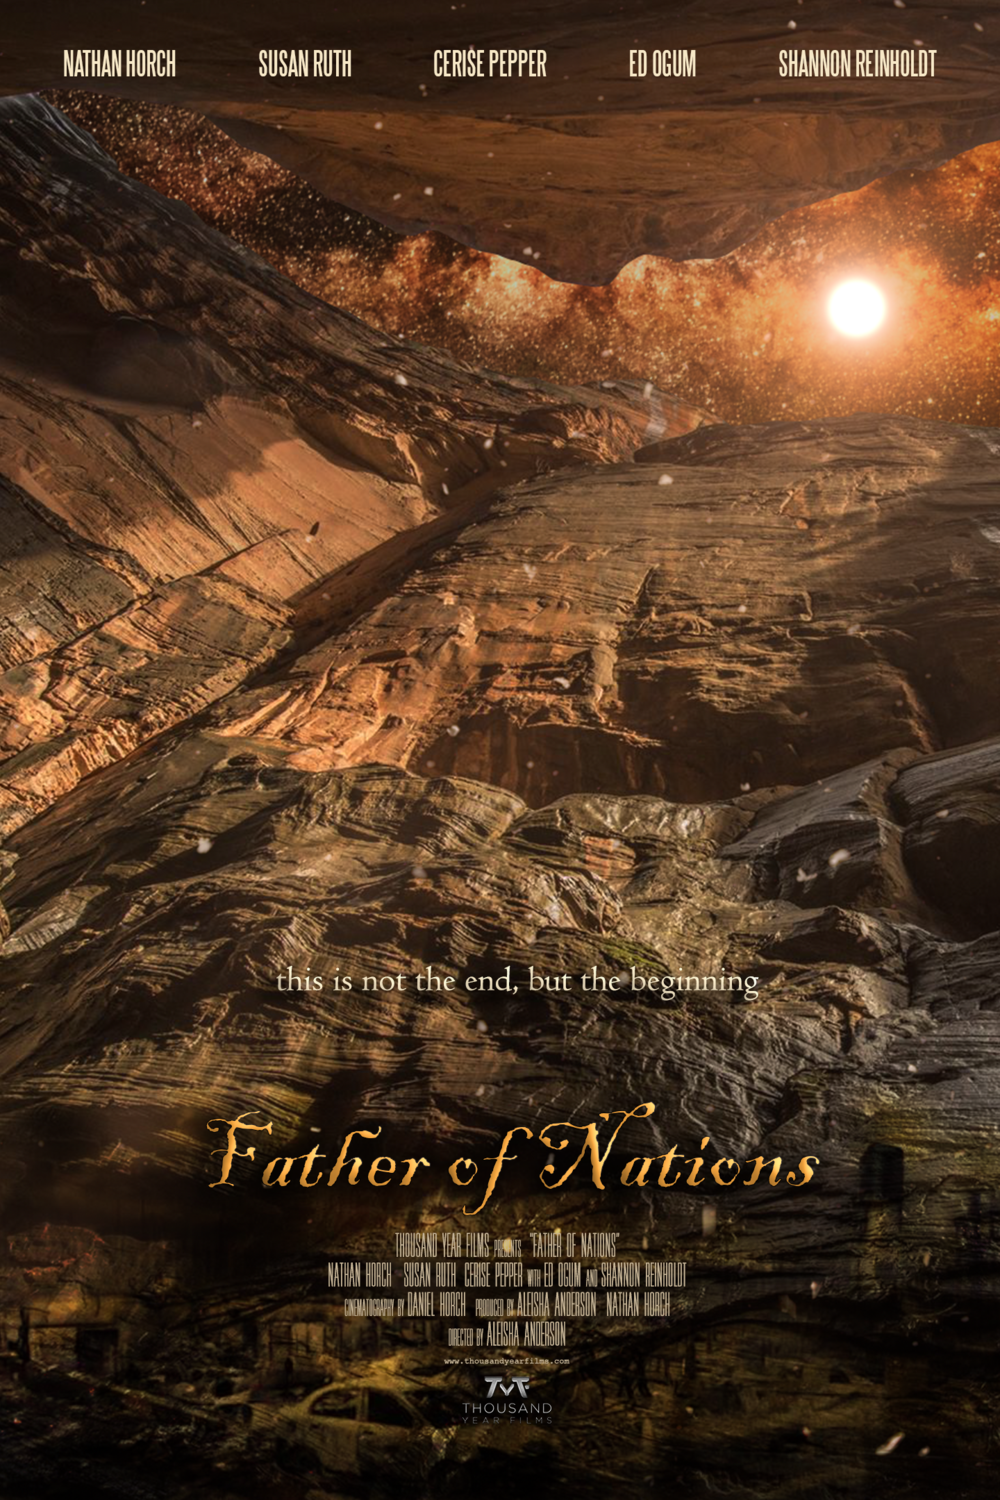 Father of Nations Poster (CURRENT).png